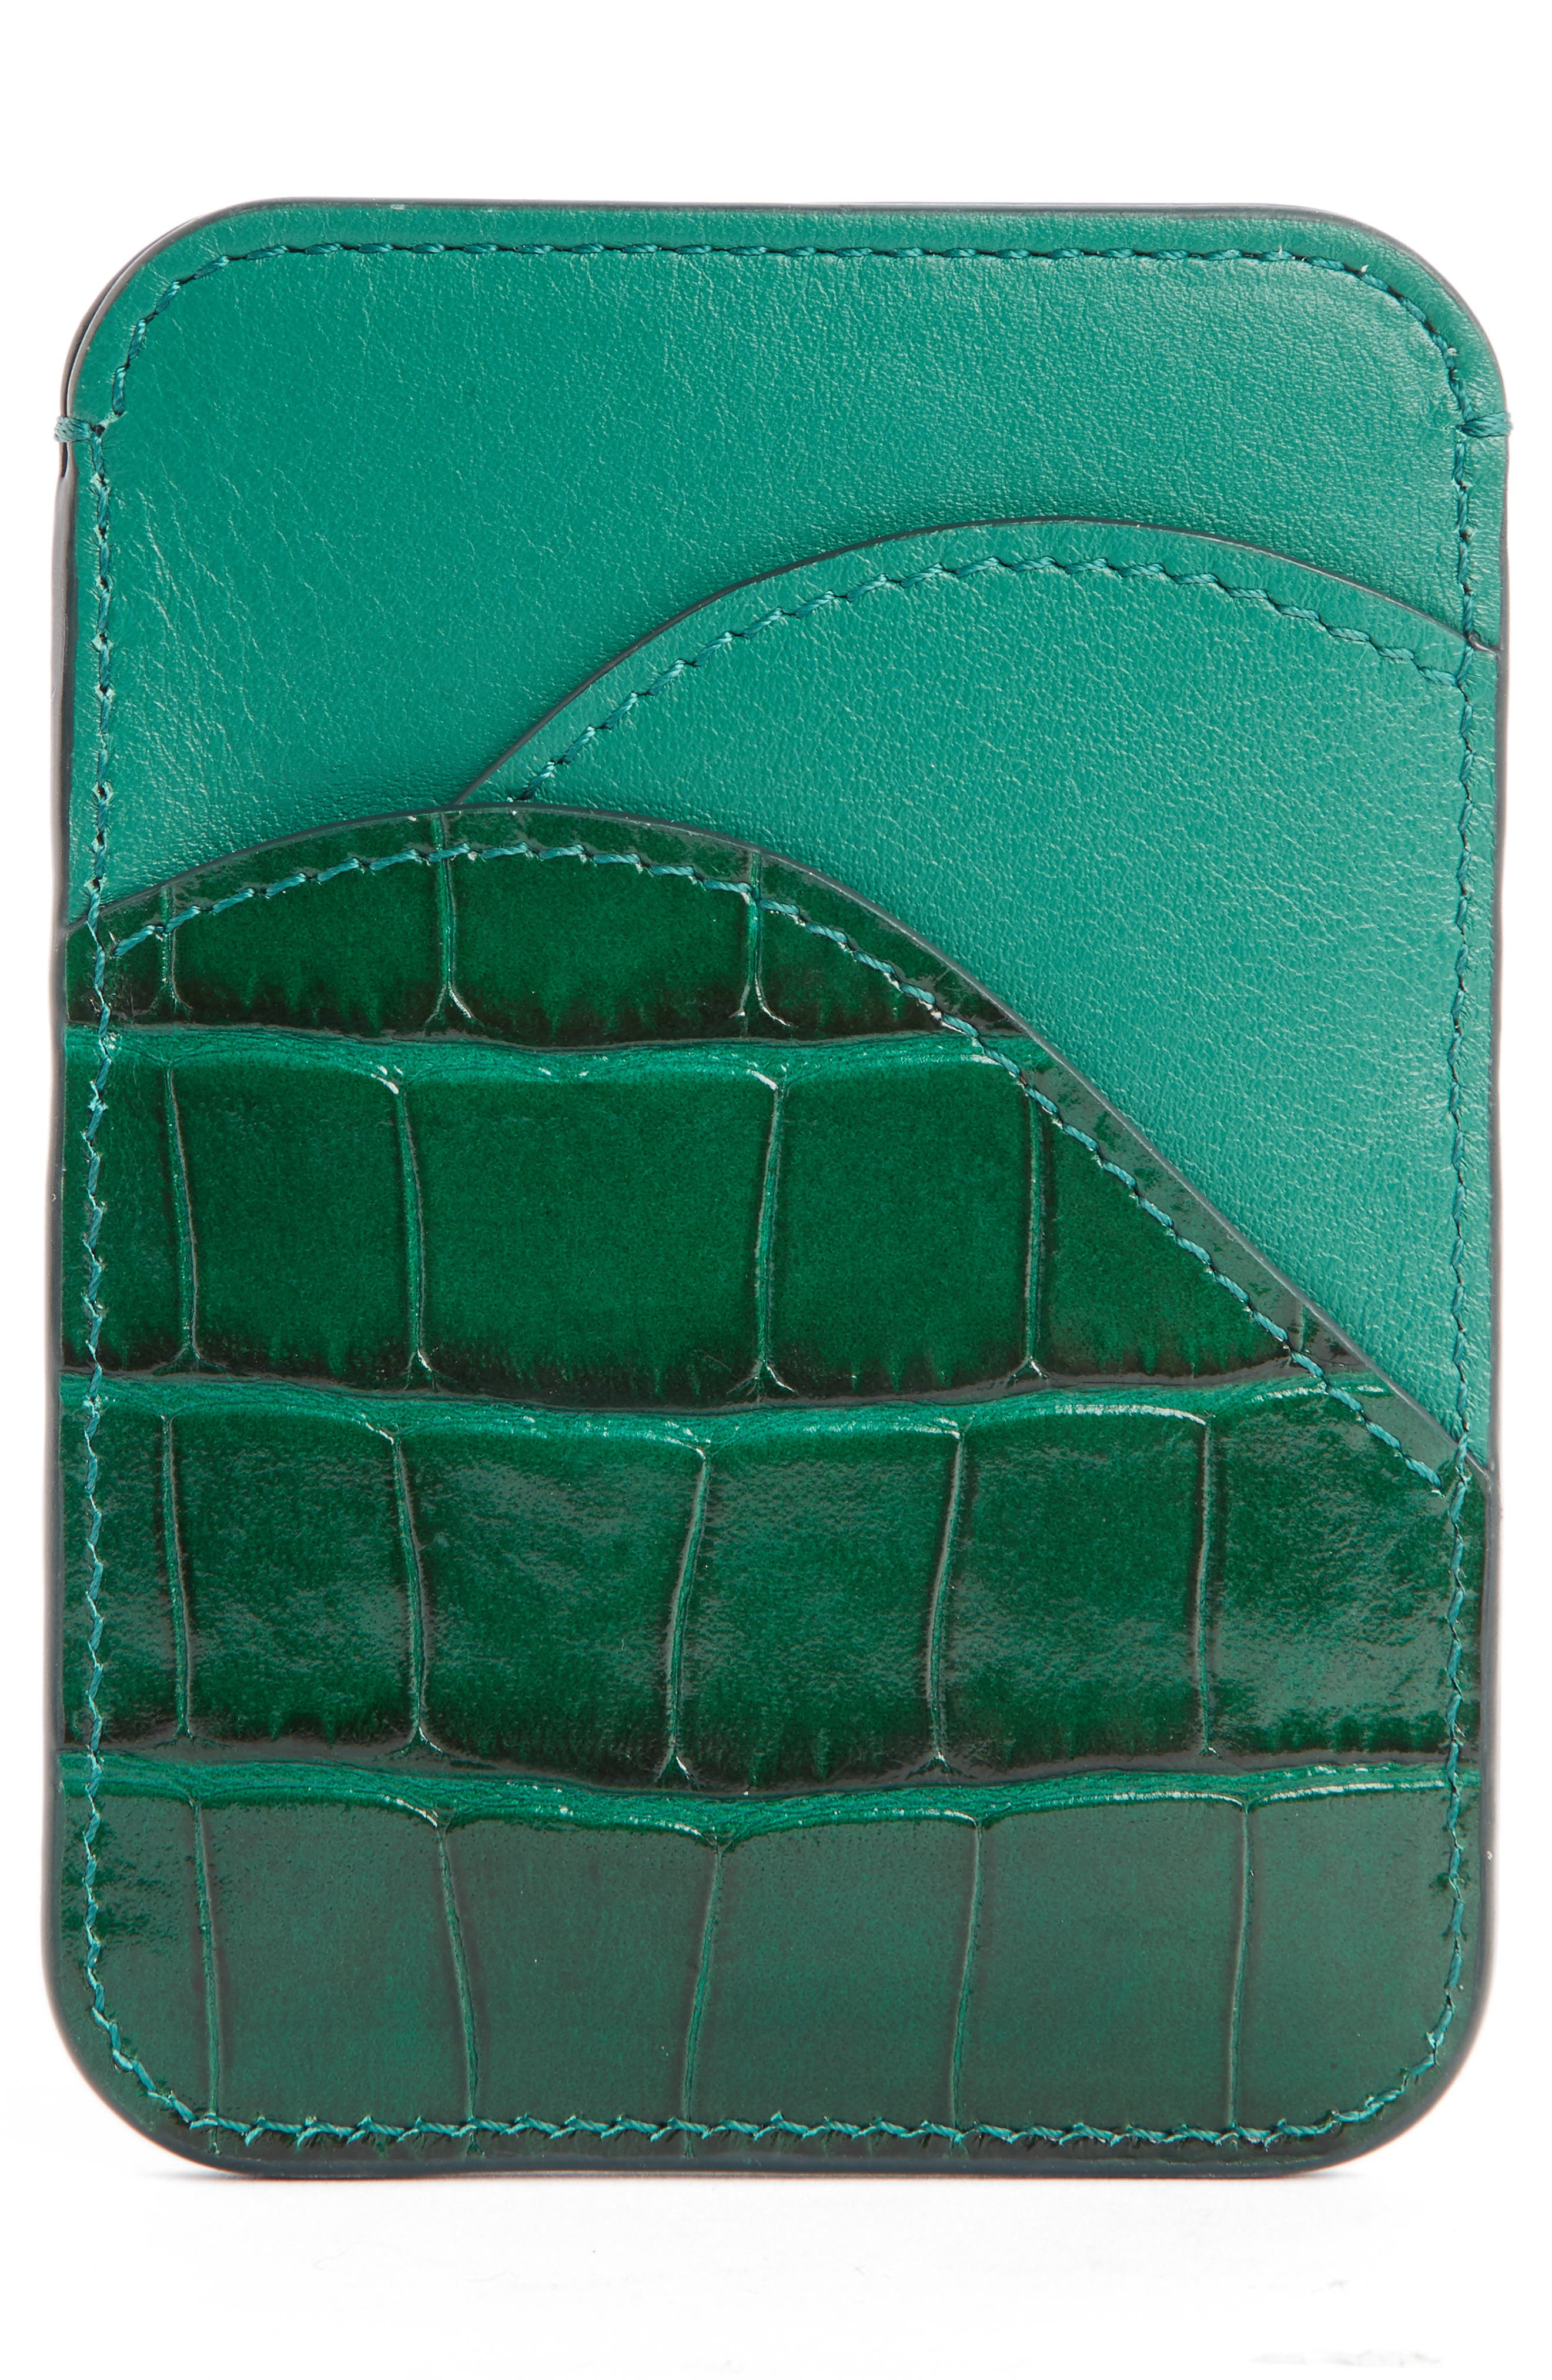 Walden Croc Embossed Leather Card Holder,                             Alternate thumbnail 2, color,                             WOODSY GREEN